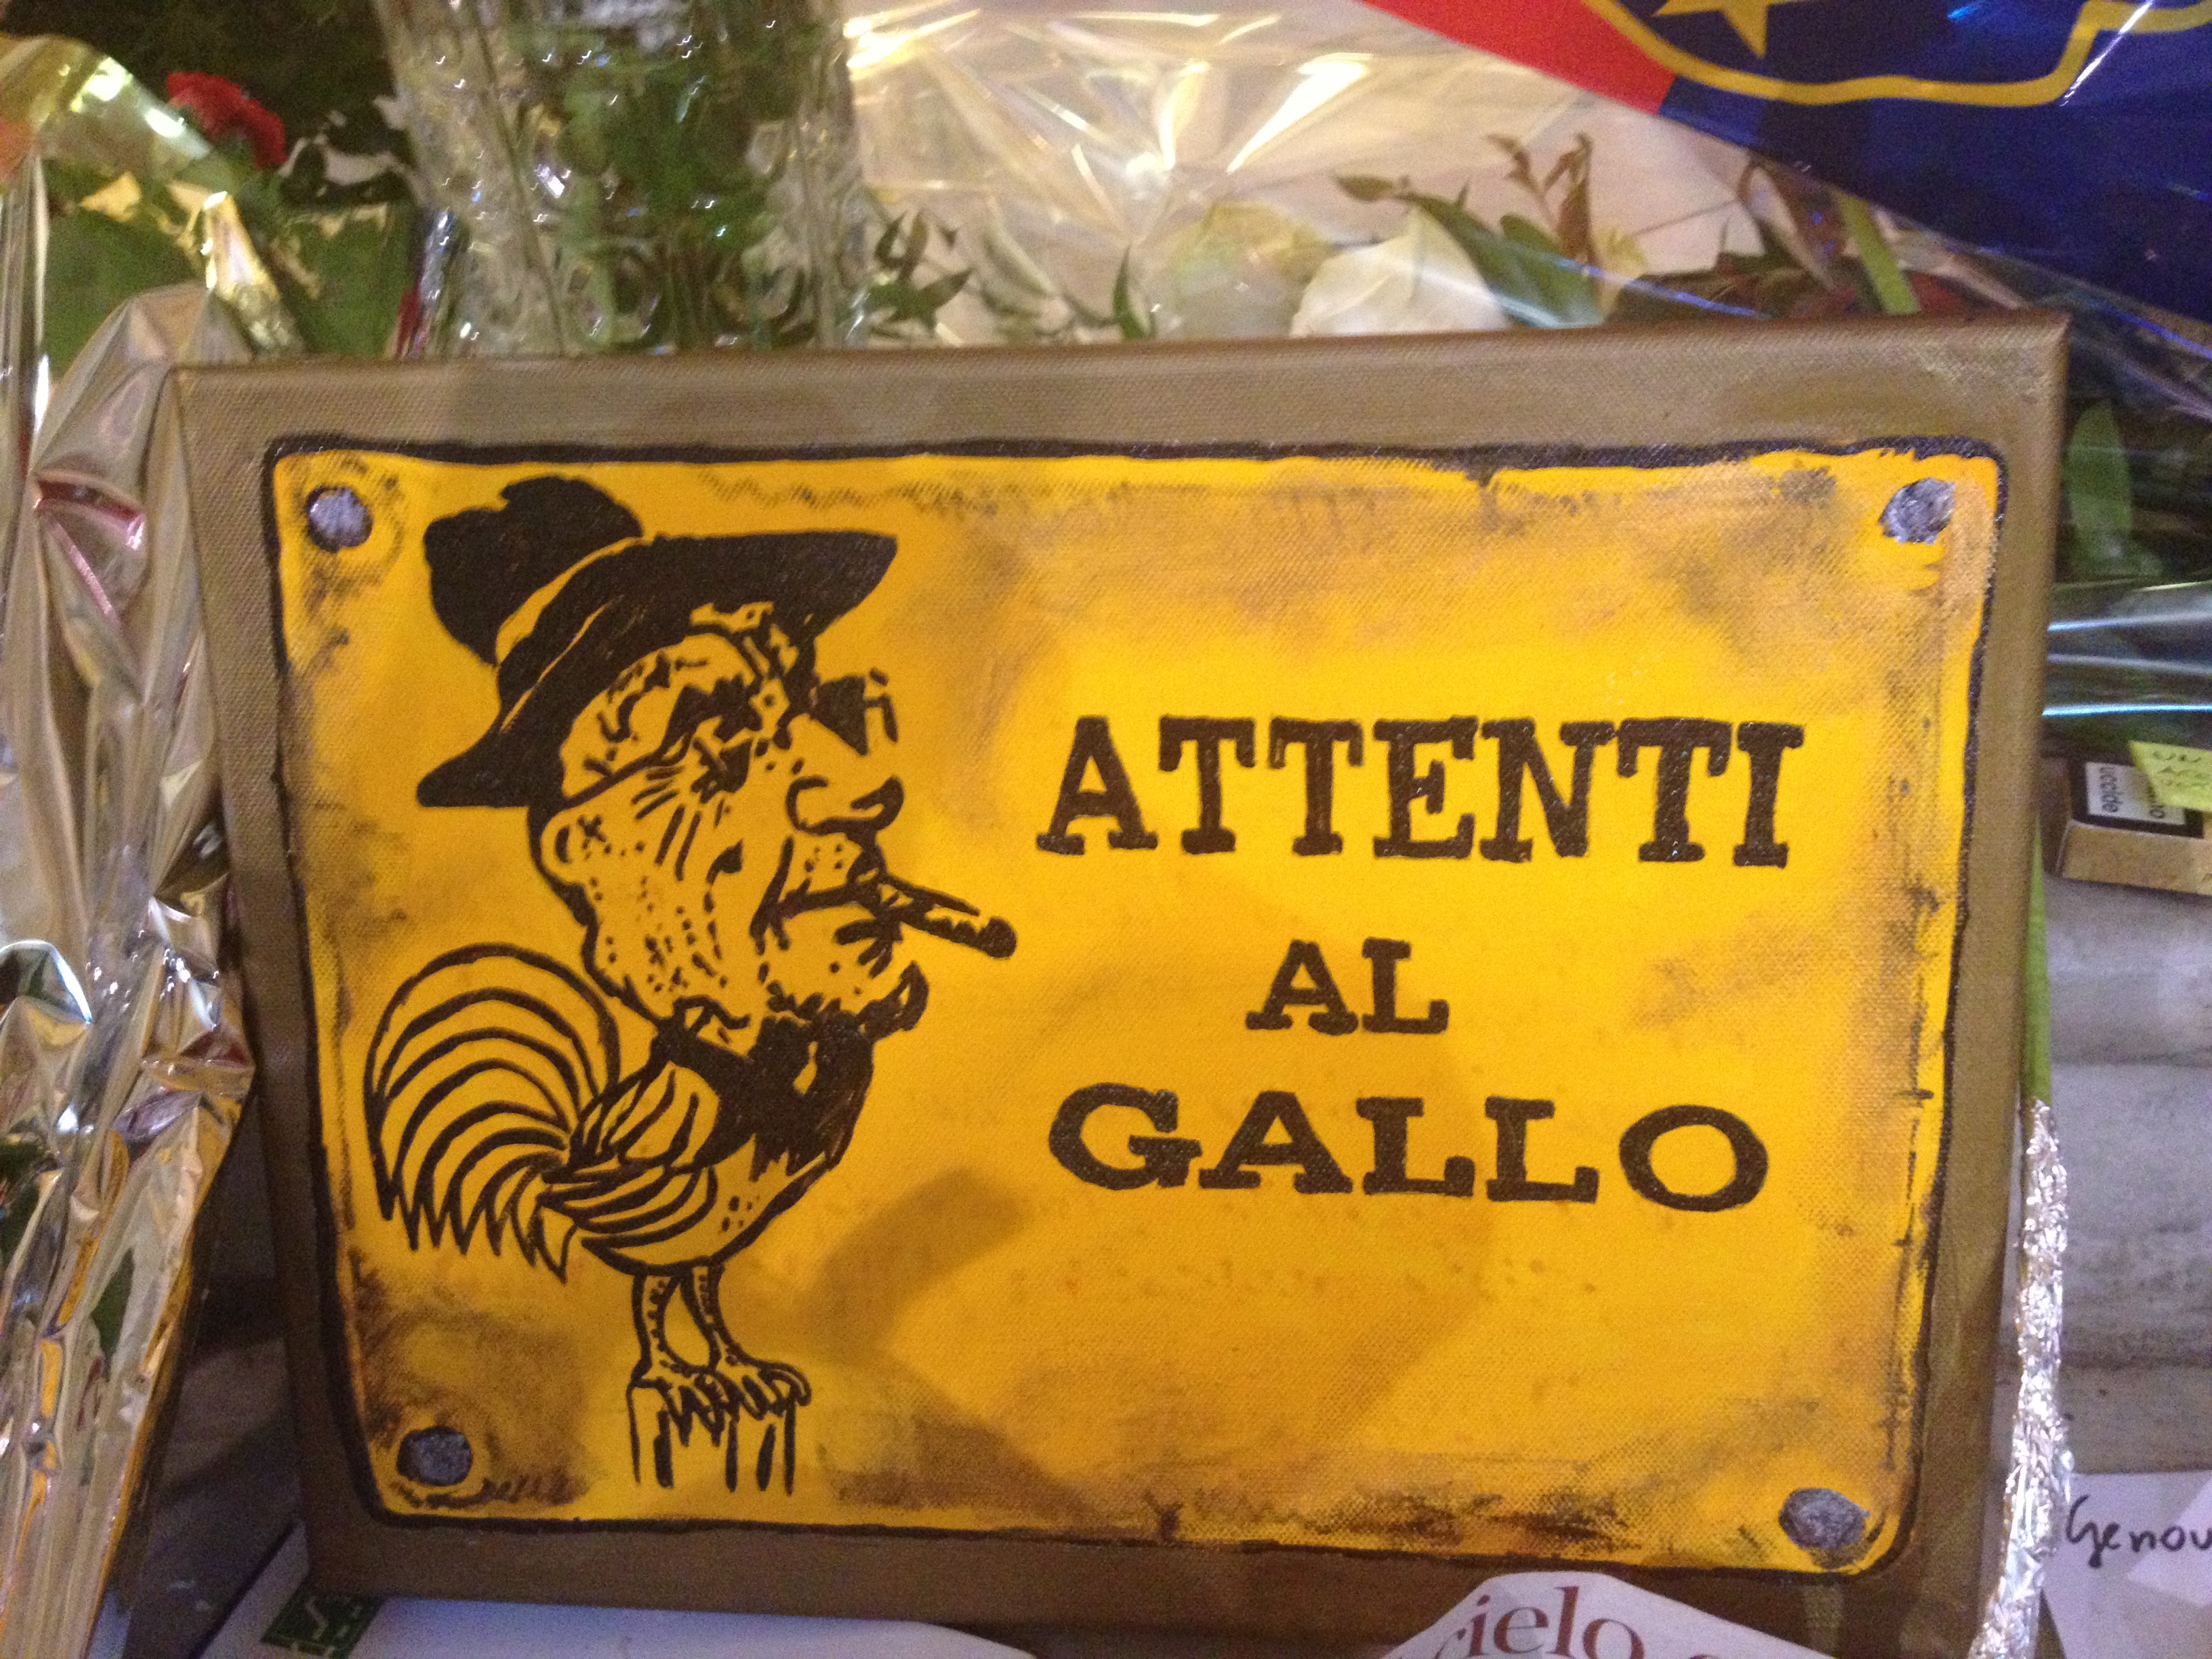 Il funerale di Don Gallo